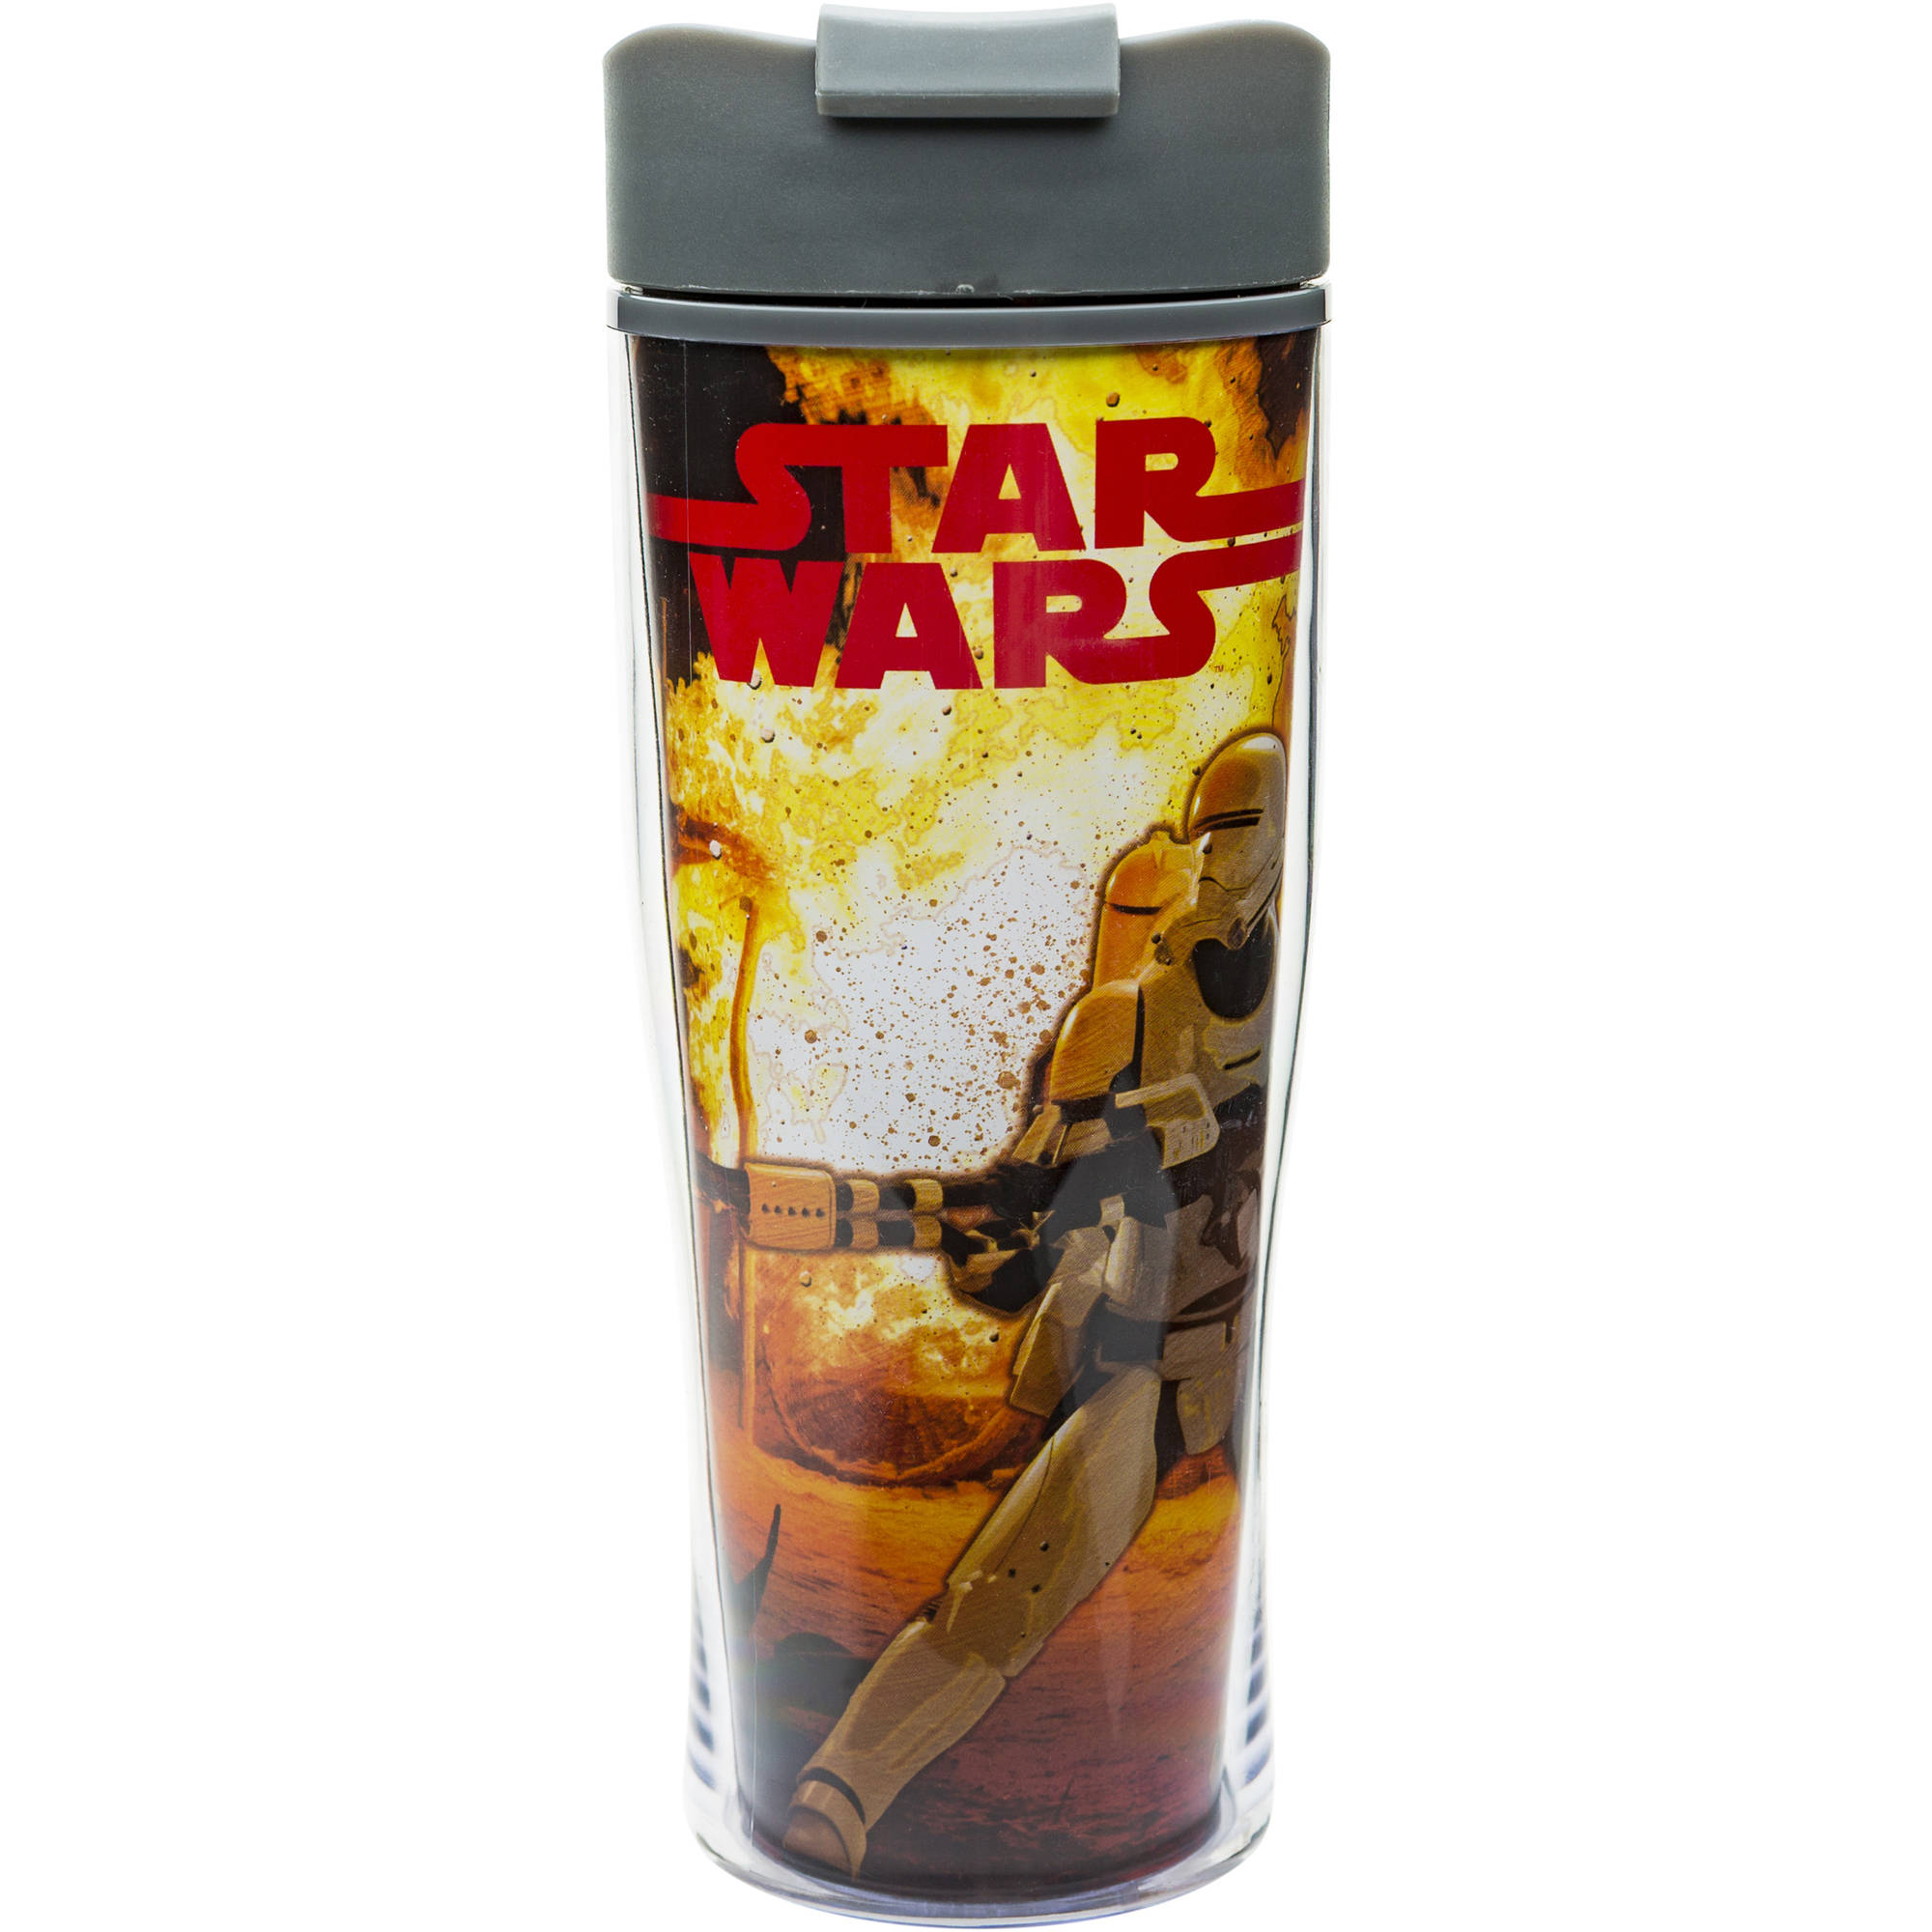 Star Wars The Force Awakens 15-Ounce Double Wall Travel Tumbler